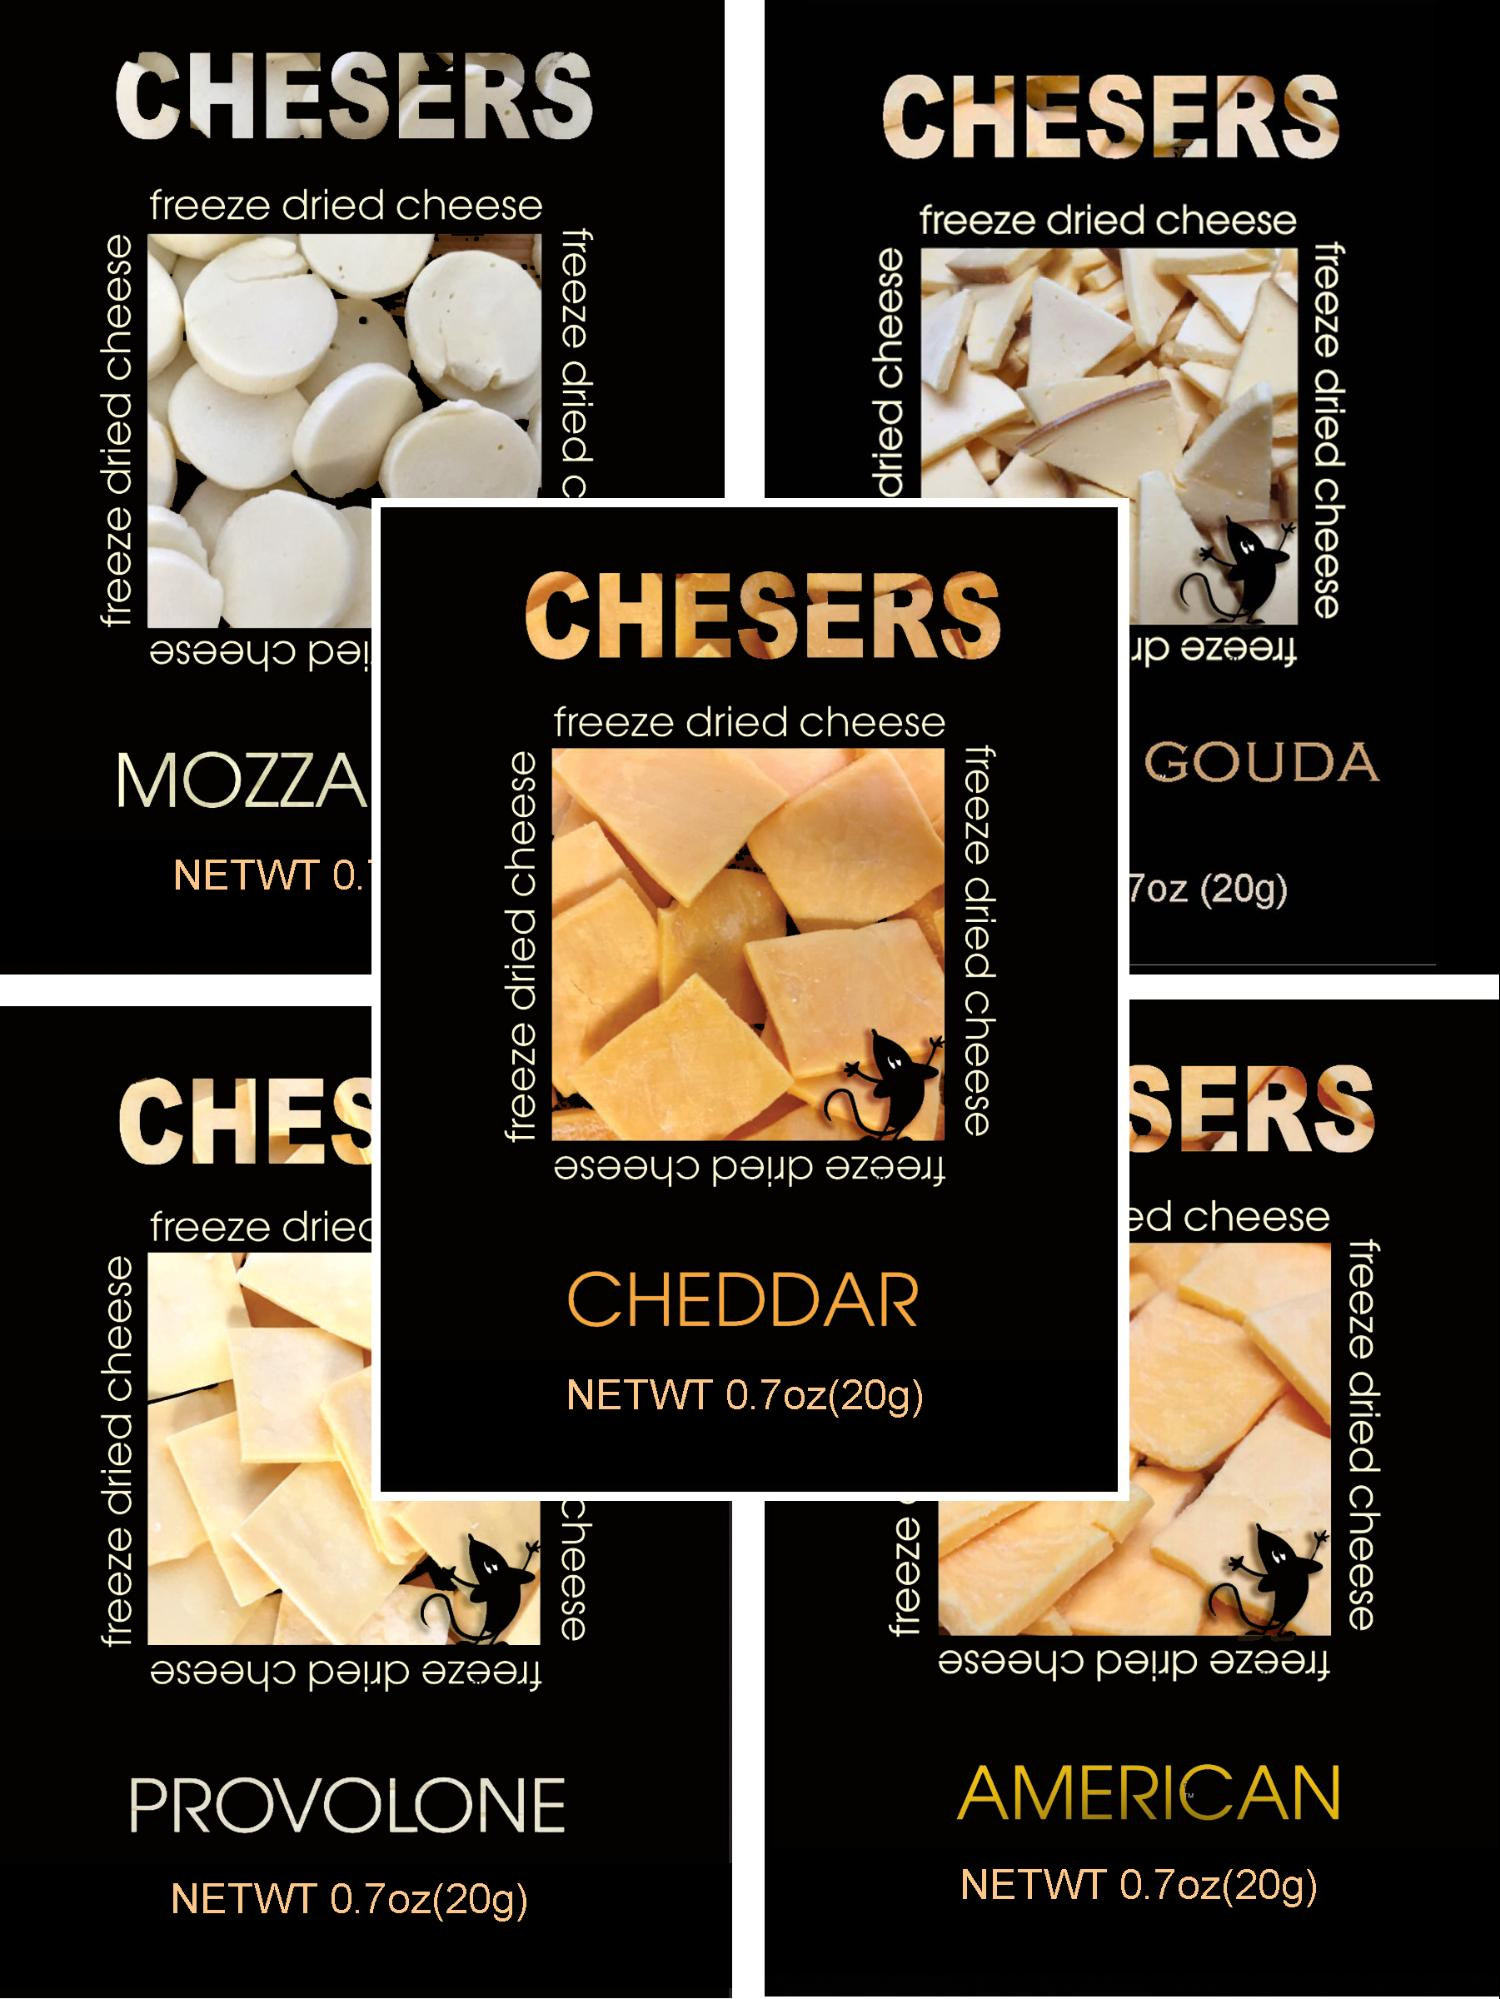 Chesers Freeze Dried Cheese Build Your Own Variety